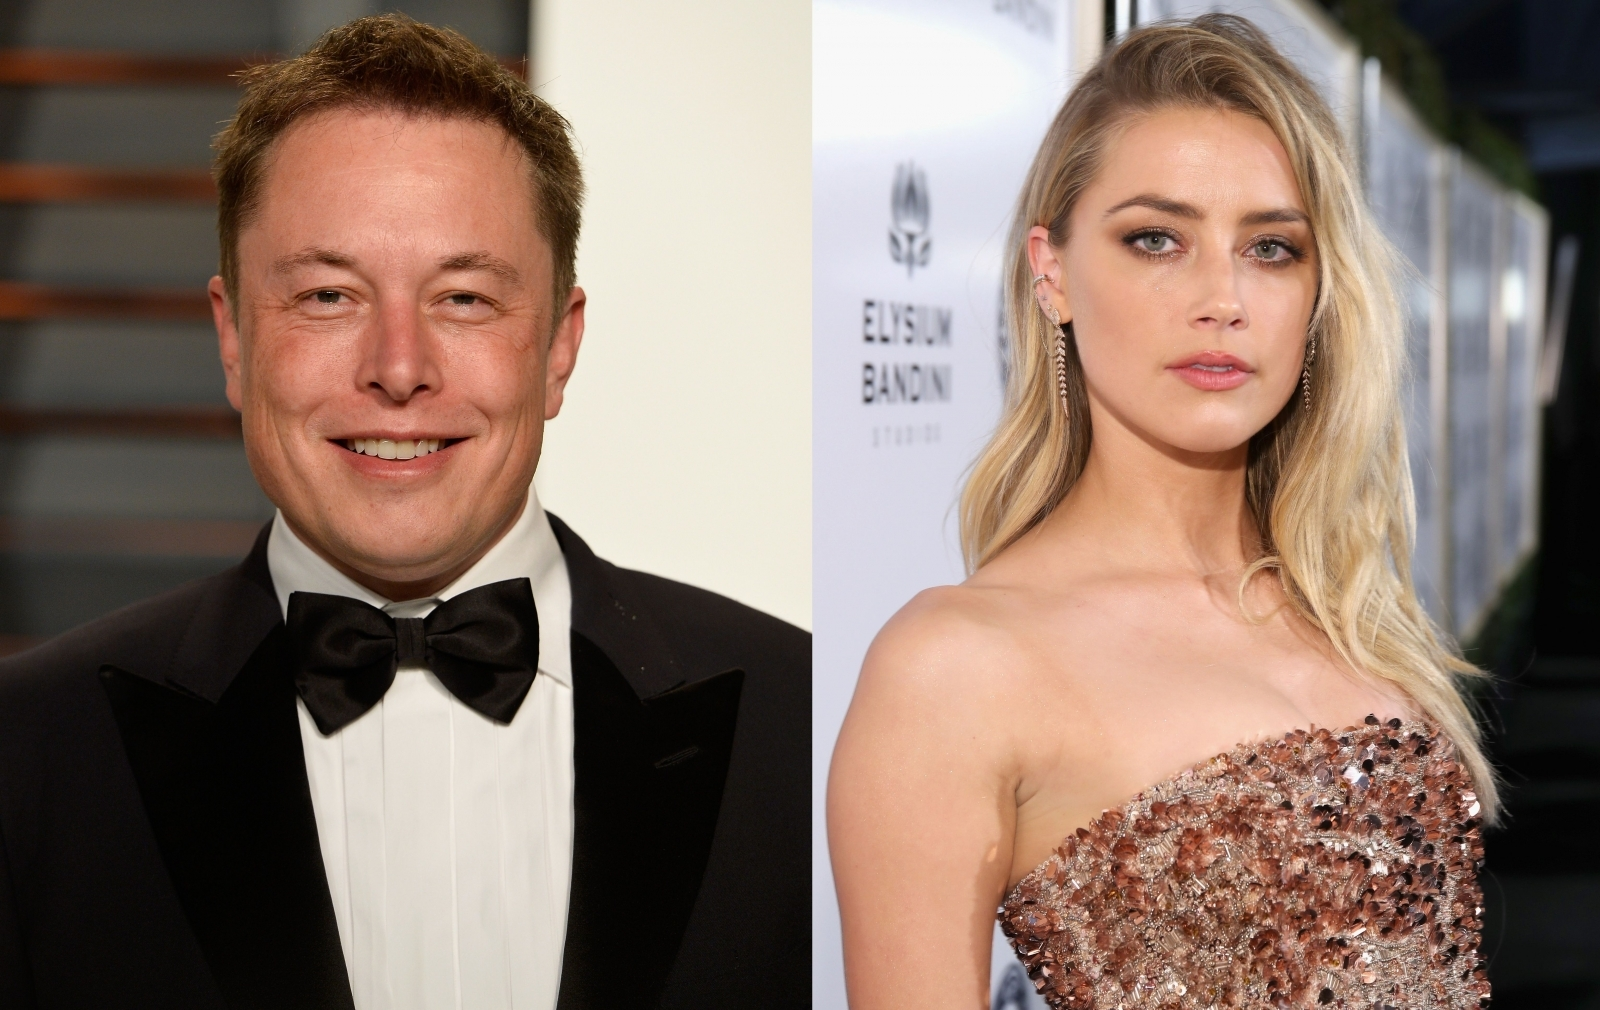 Elon Musk S Ex Amber Heard Poses In Just A Towel For A Saucy Instagram Snap Hotness Redefined